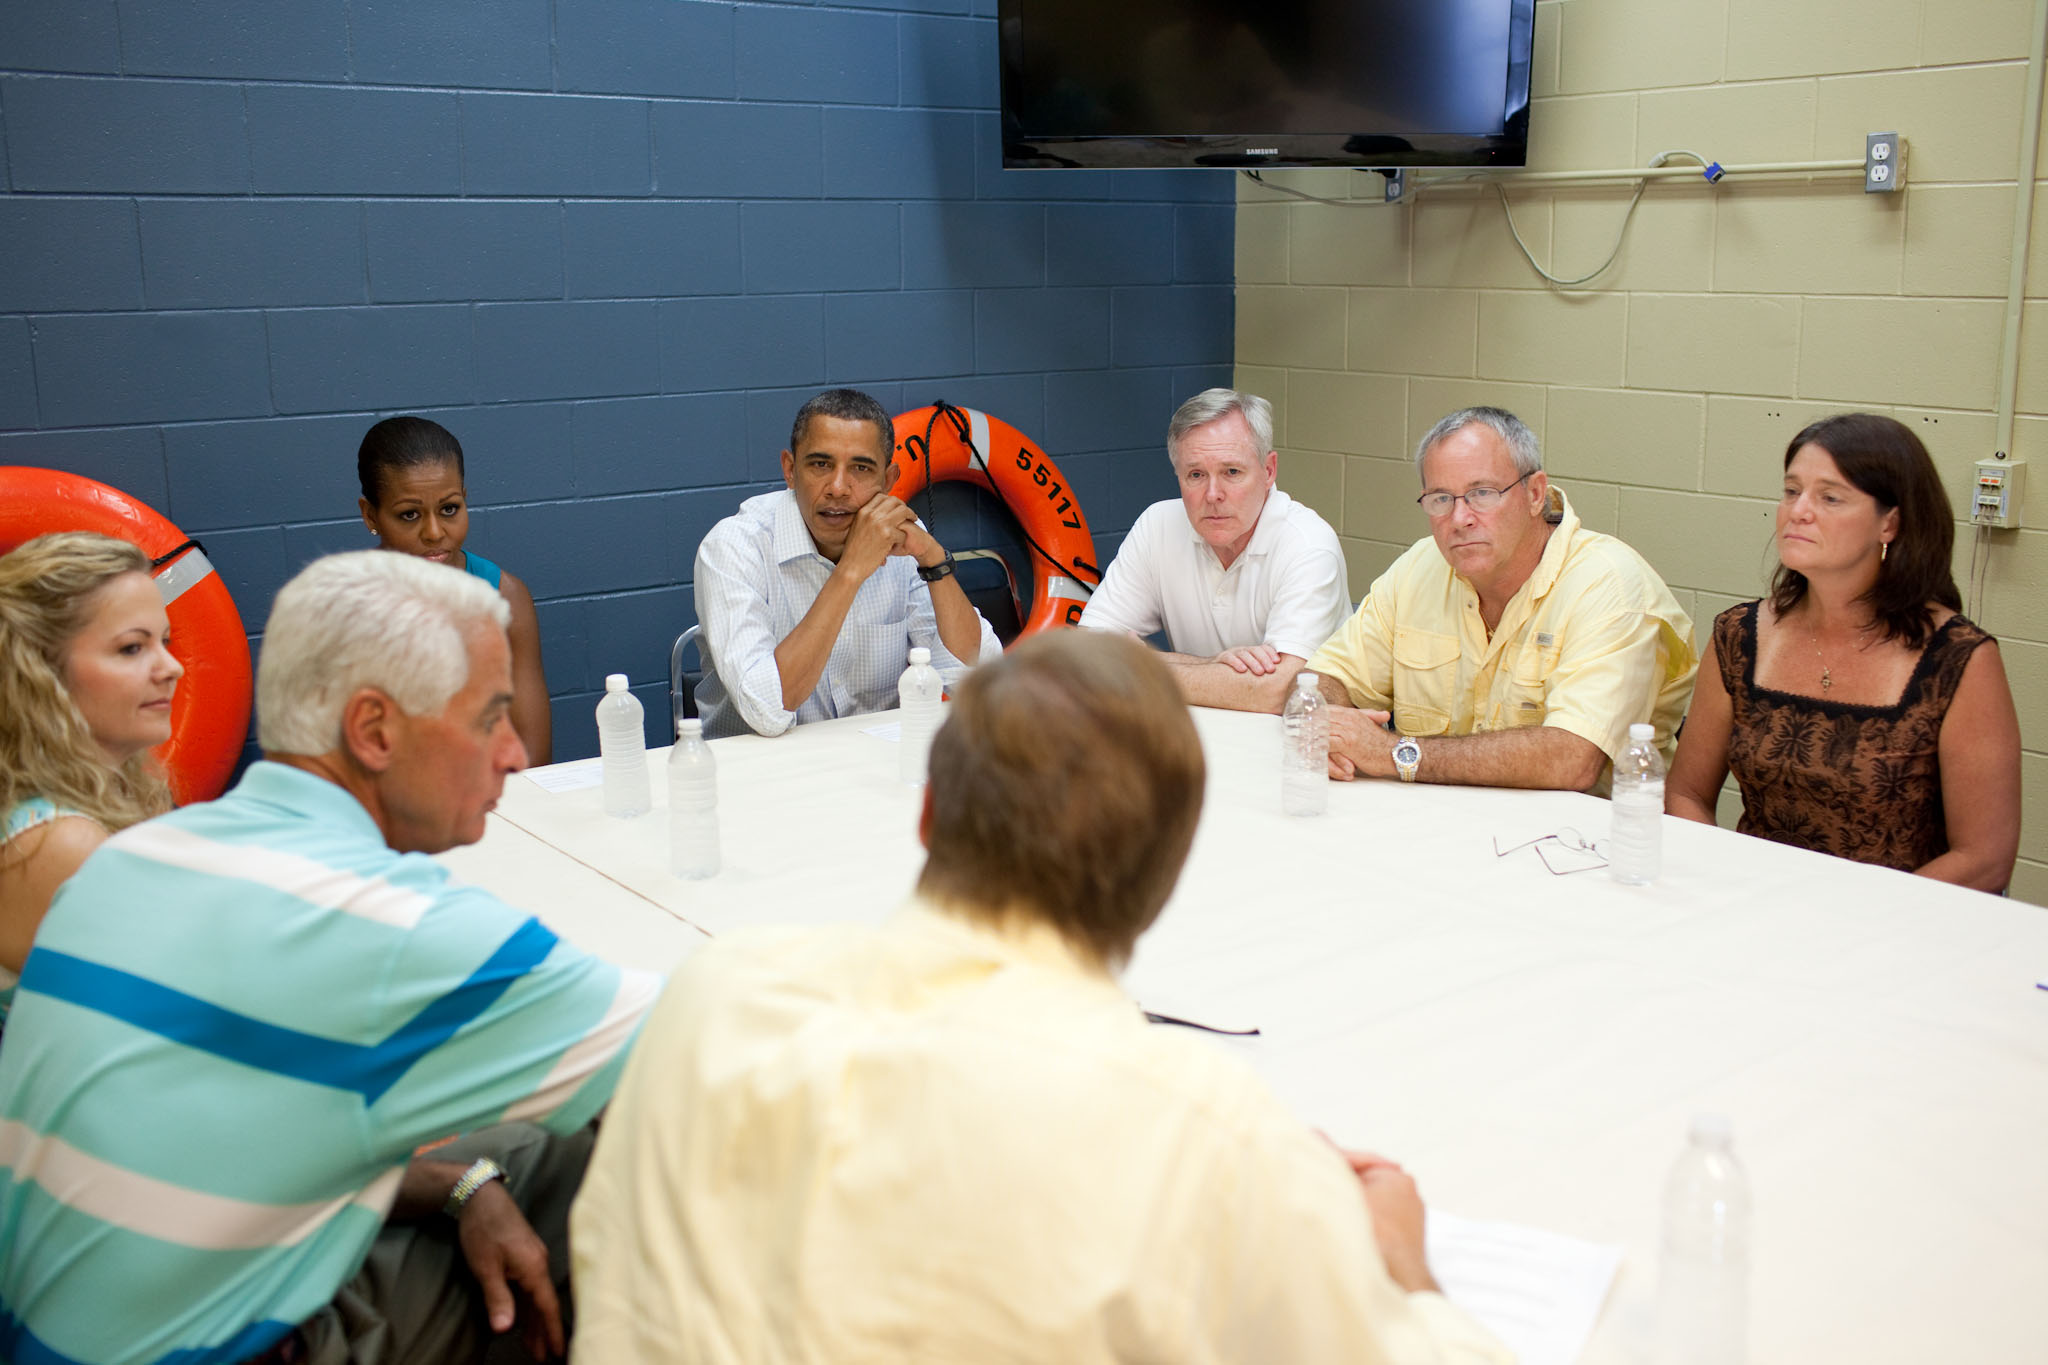 The President and the First Lady participate in a roundtable discussion in Florida